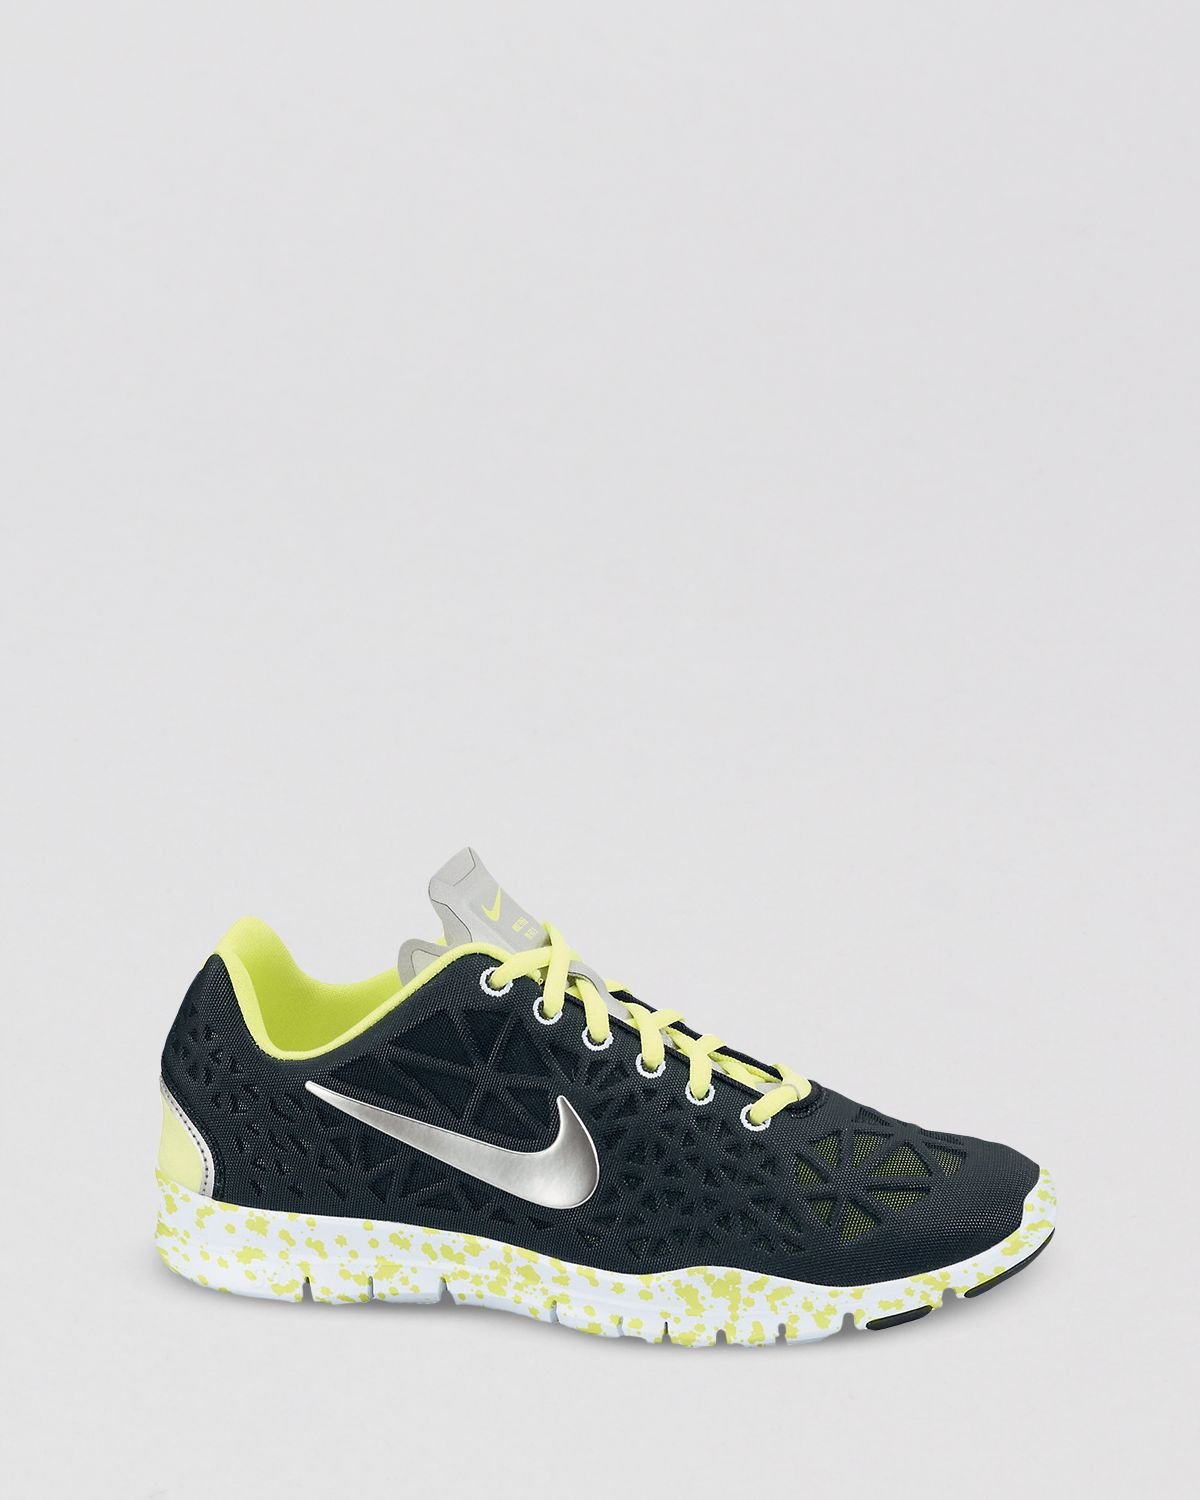 3d40ae0fe916 Lyst - Nike Lace Up Sneakers Womens Free Tr Fit 3 in Black